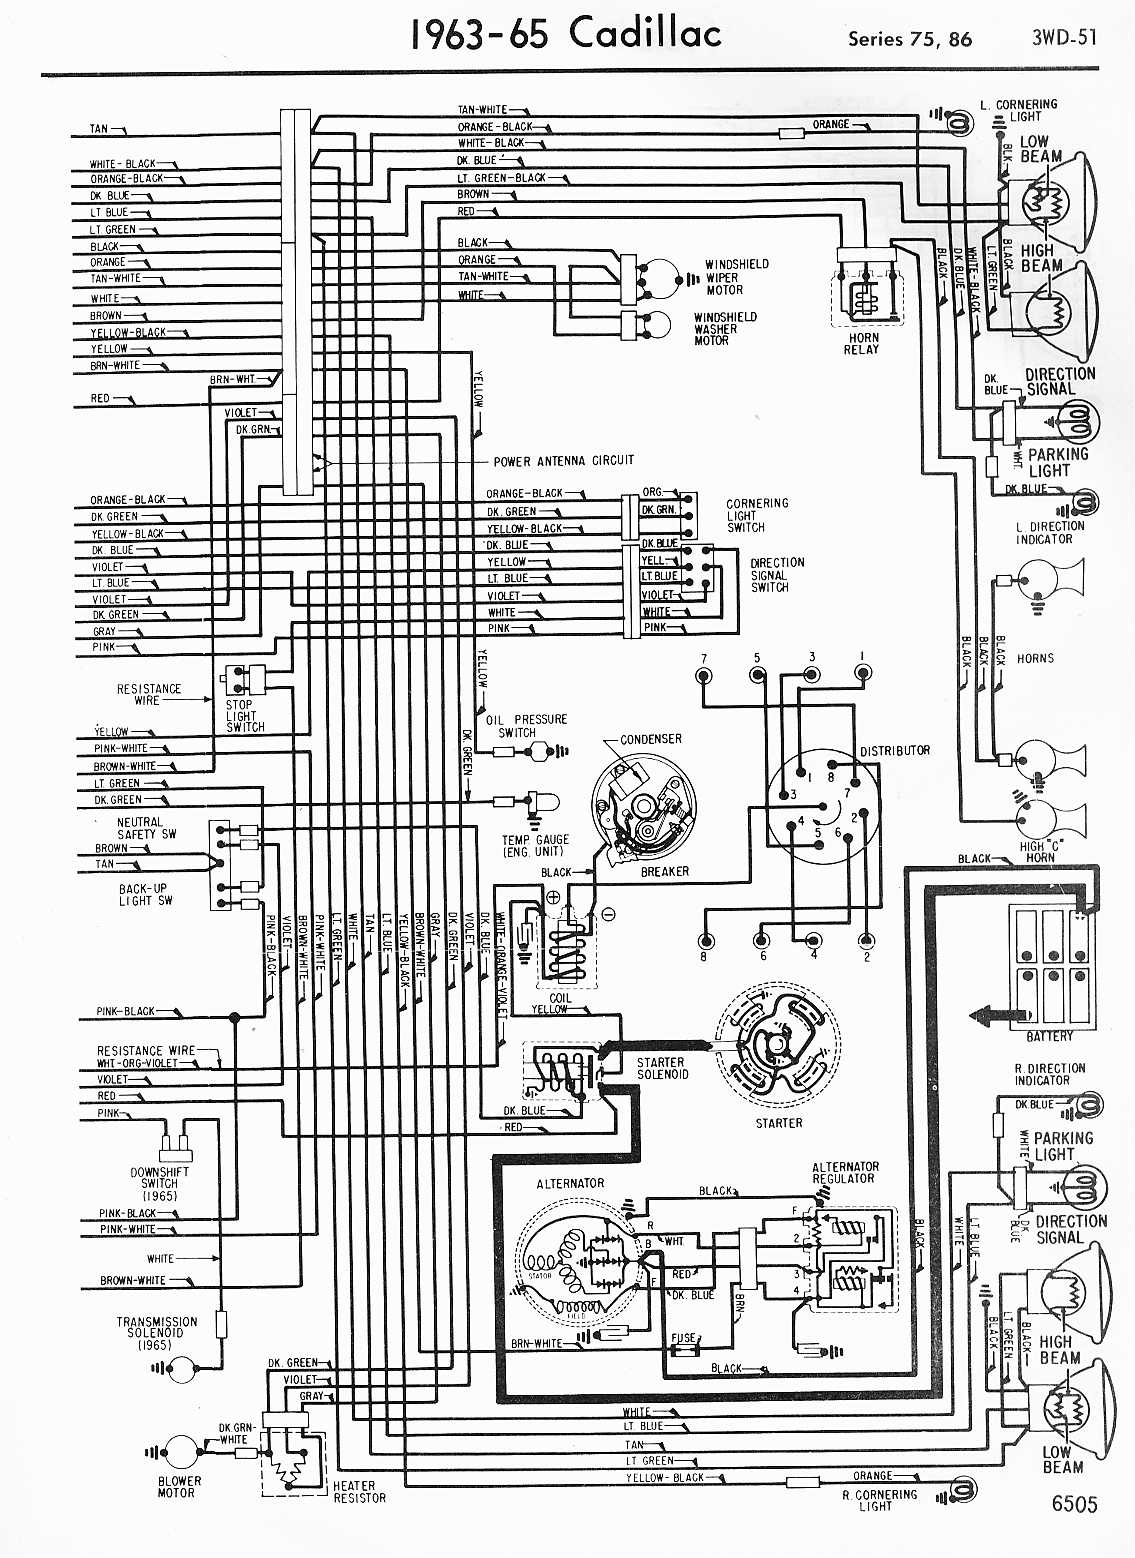 1954 Chrysler Wiring Diagram Content Resource Of 1964 Plymouth Valiant Diagrams Light Curb Schematics U2022 Rh Parntesis Co 2001 Sebring